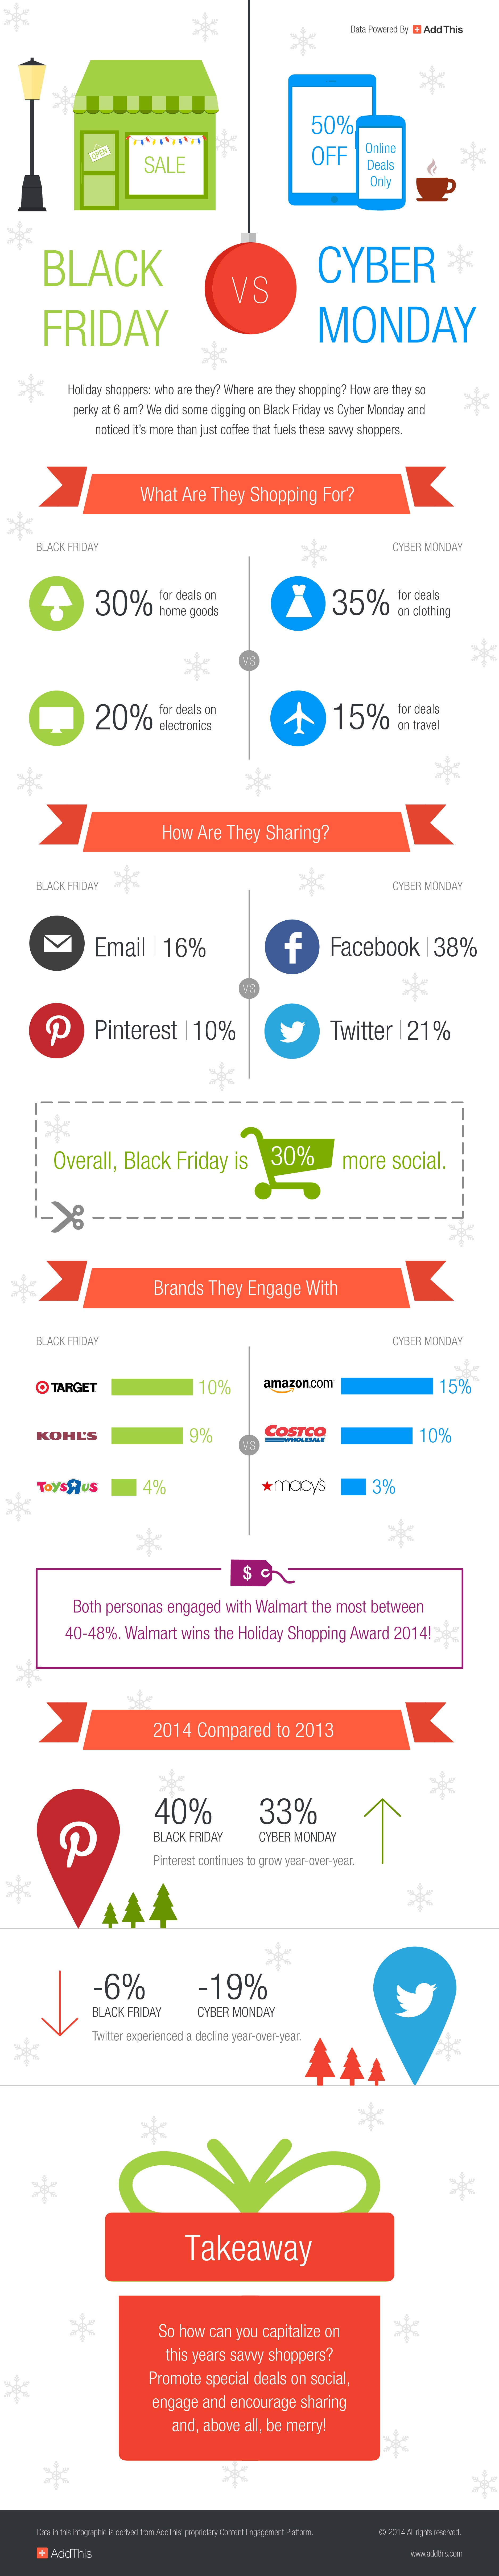 addthis-black-friday-cyber-monday-2014-infographic